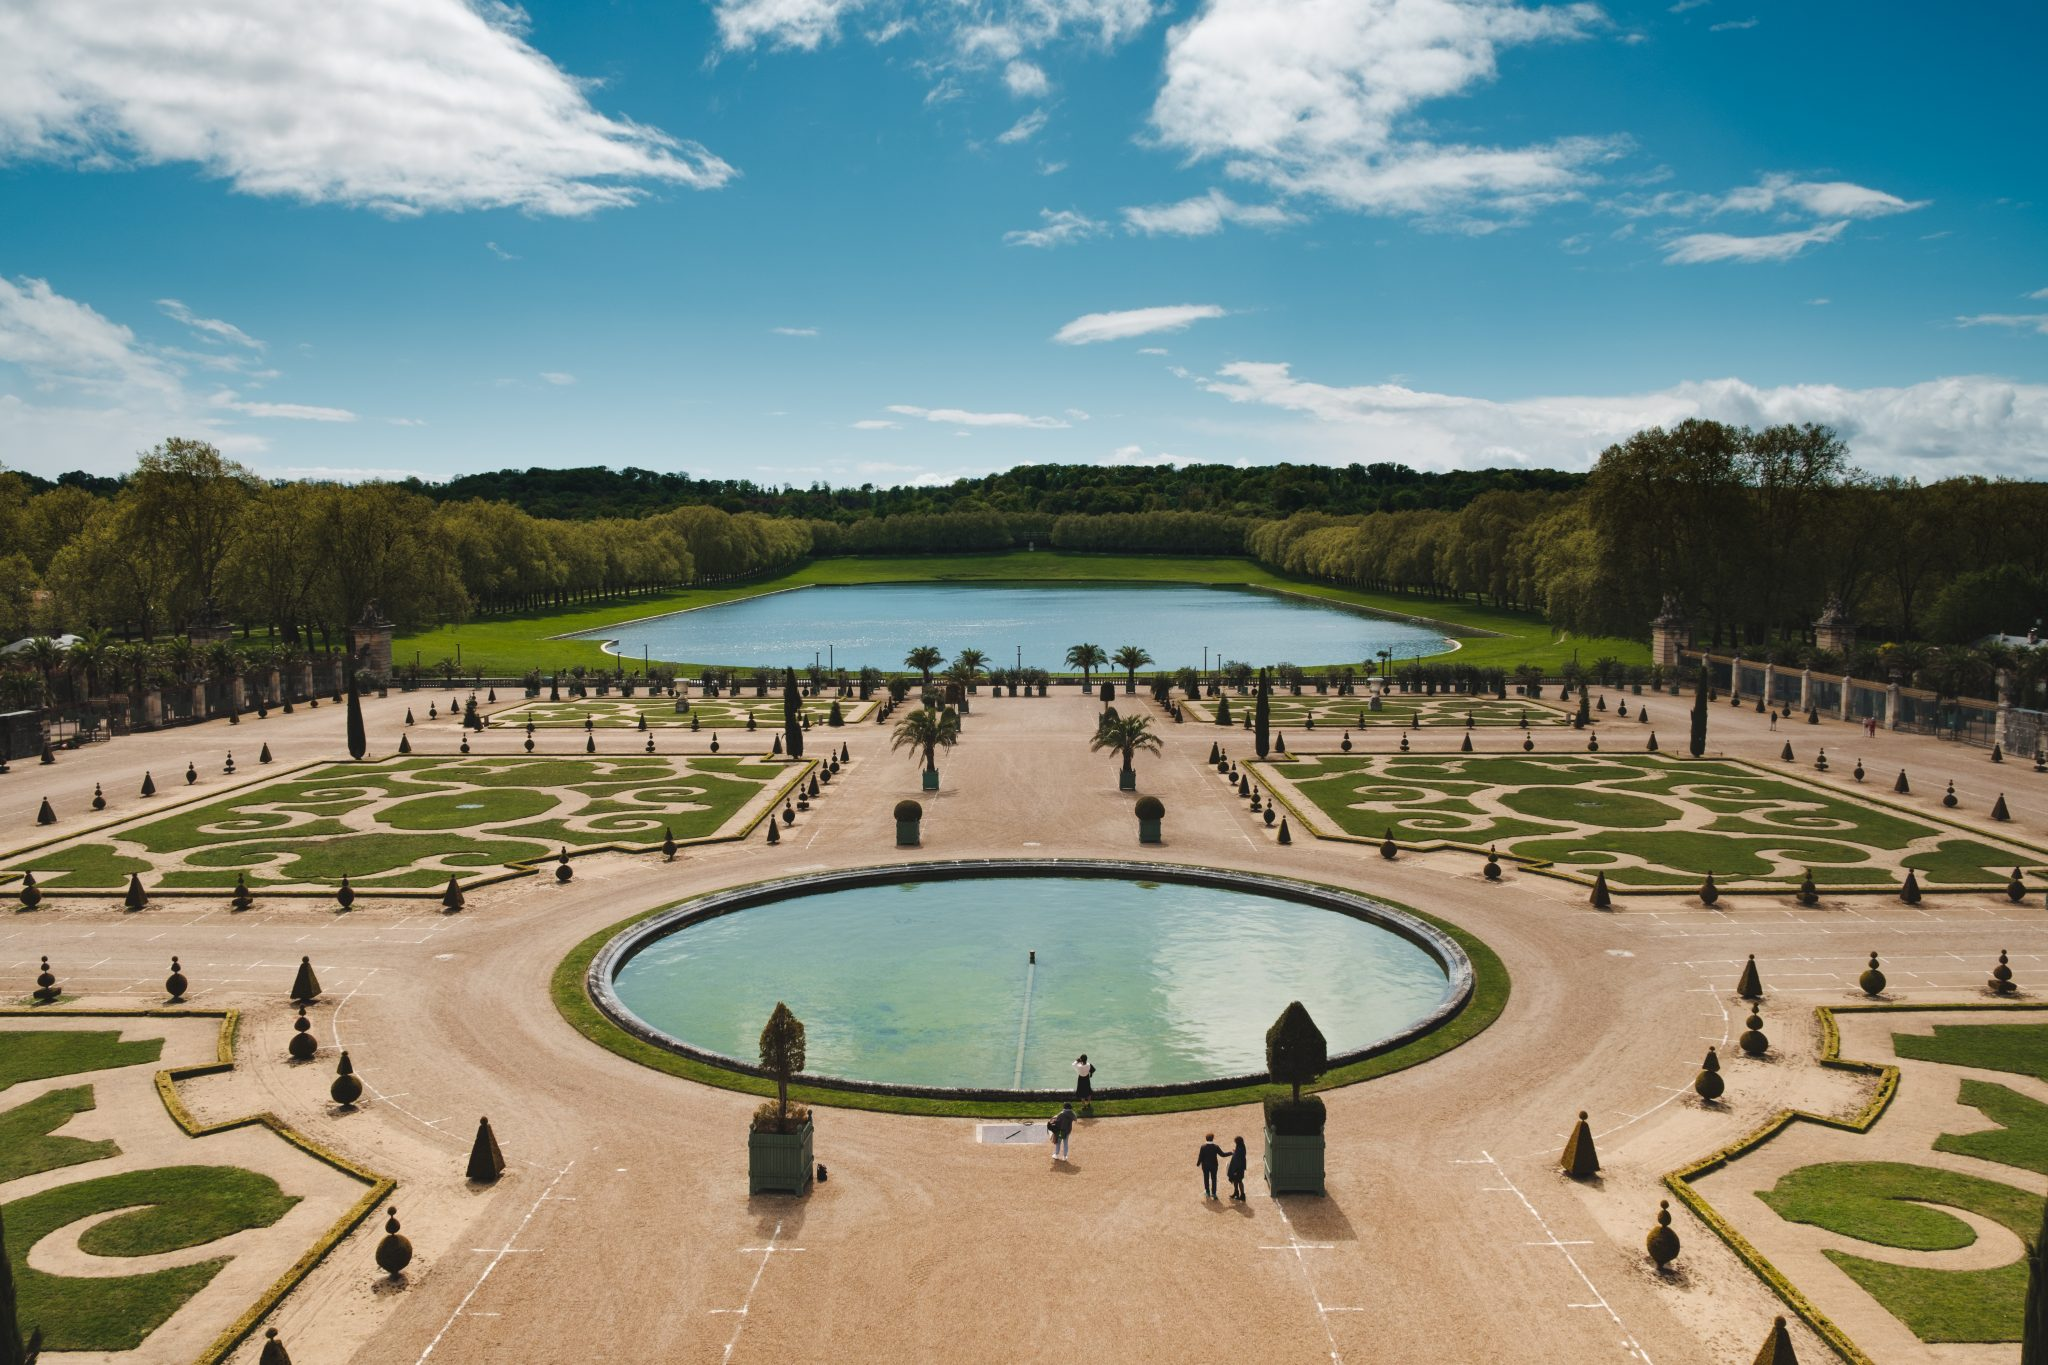 Garden of the chateau de versailles photo by Jo Kassis